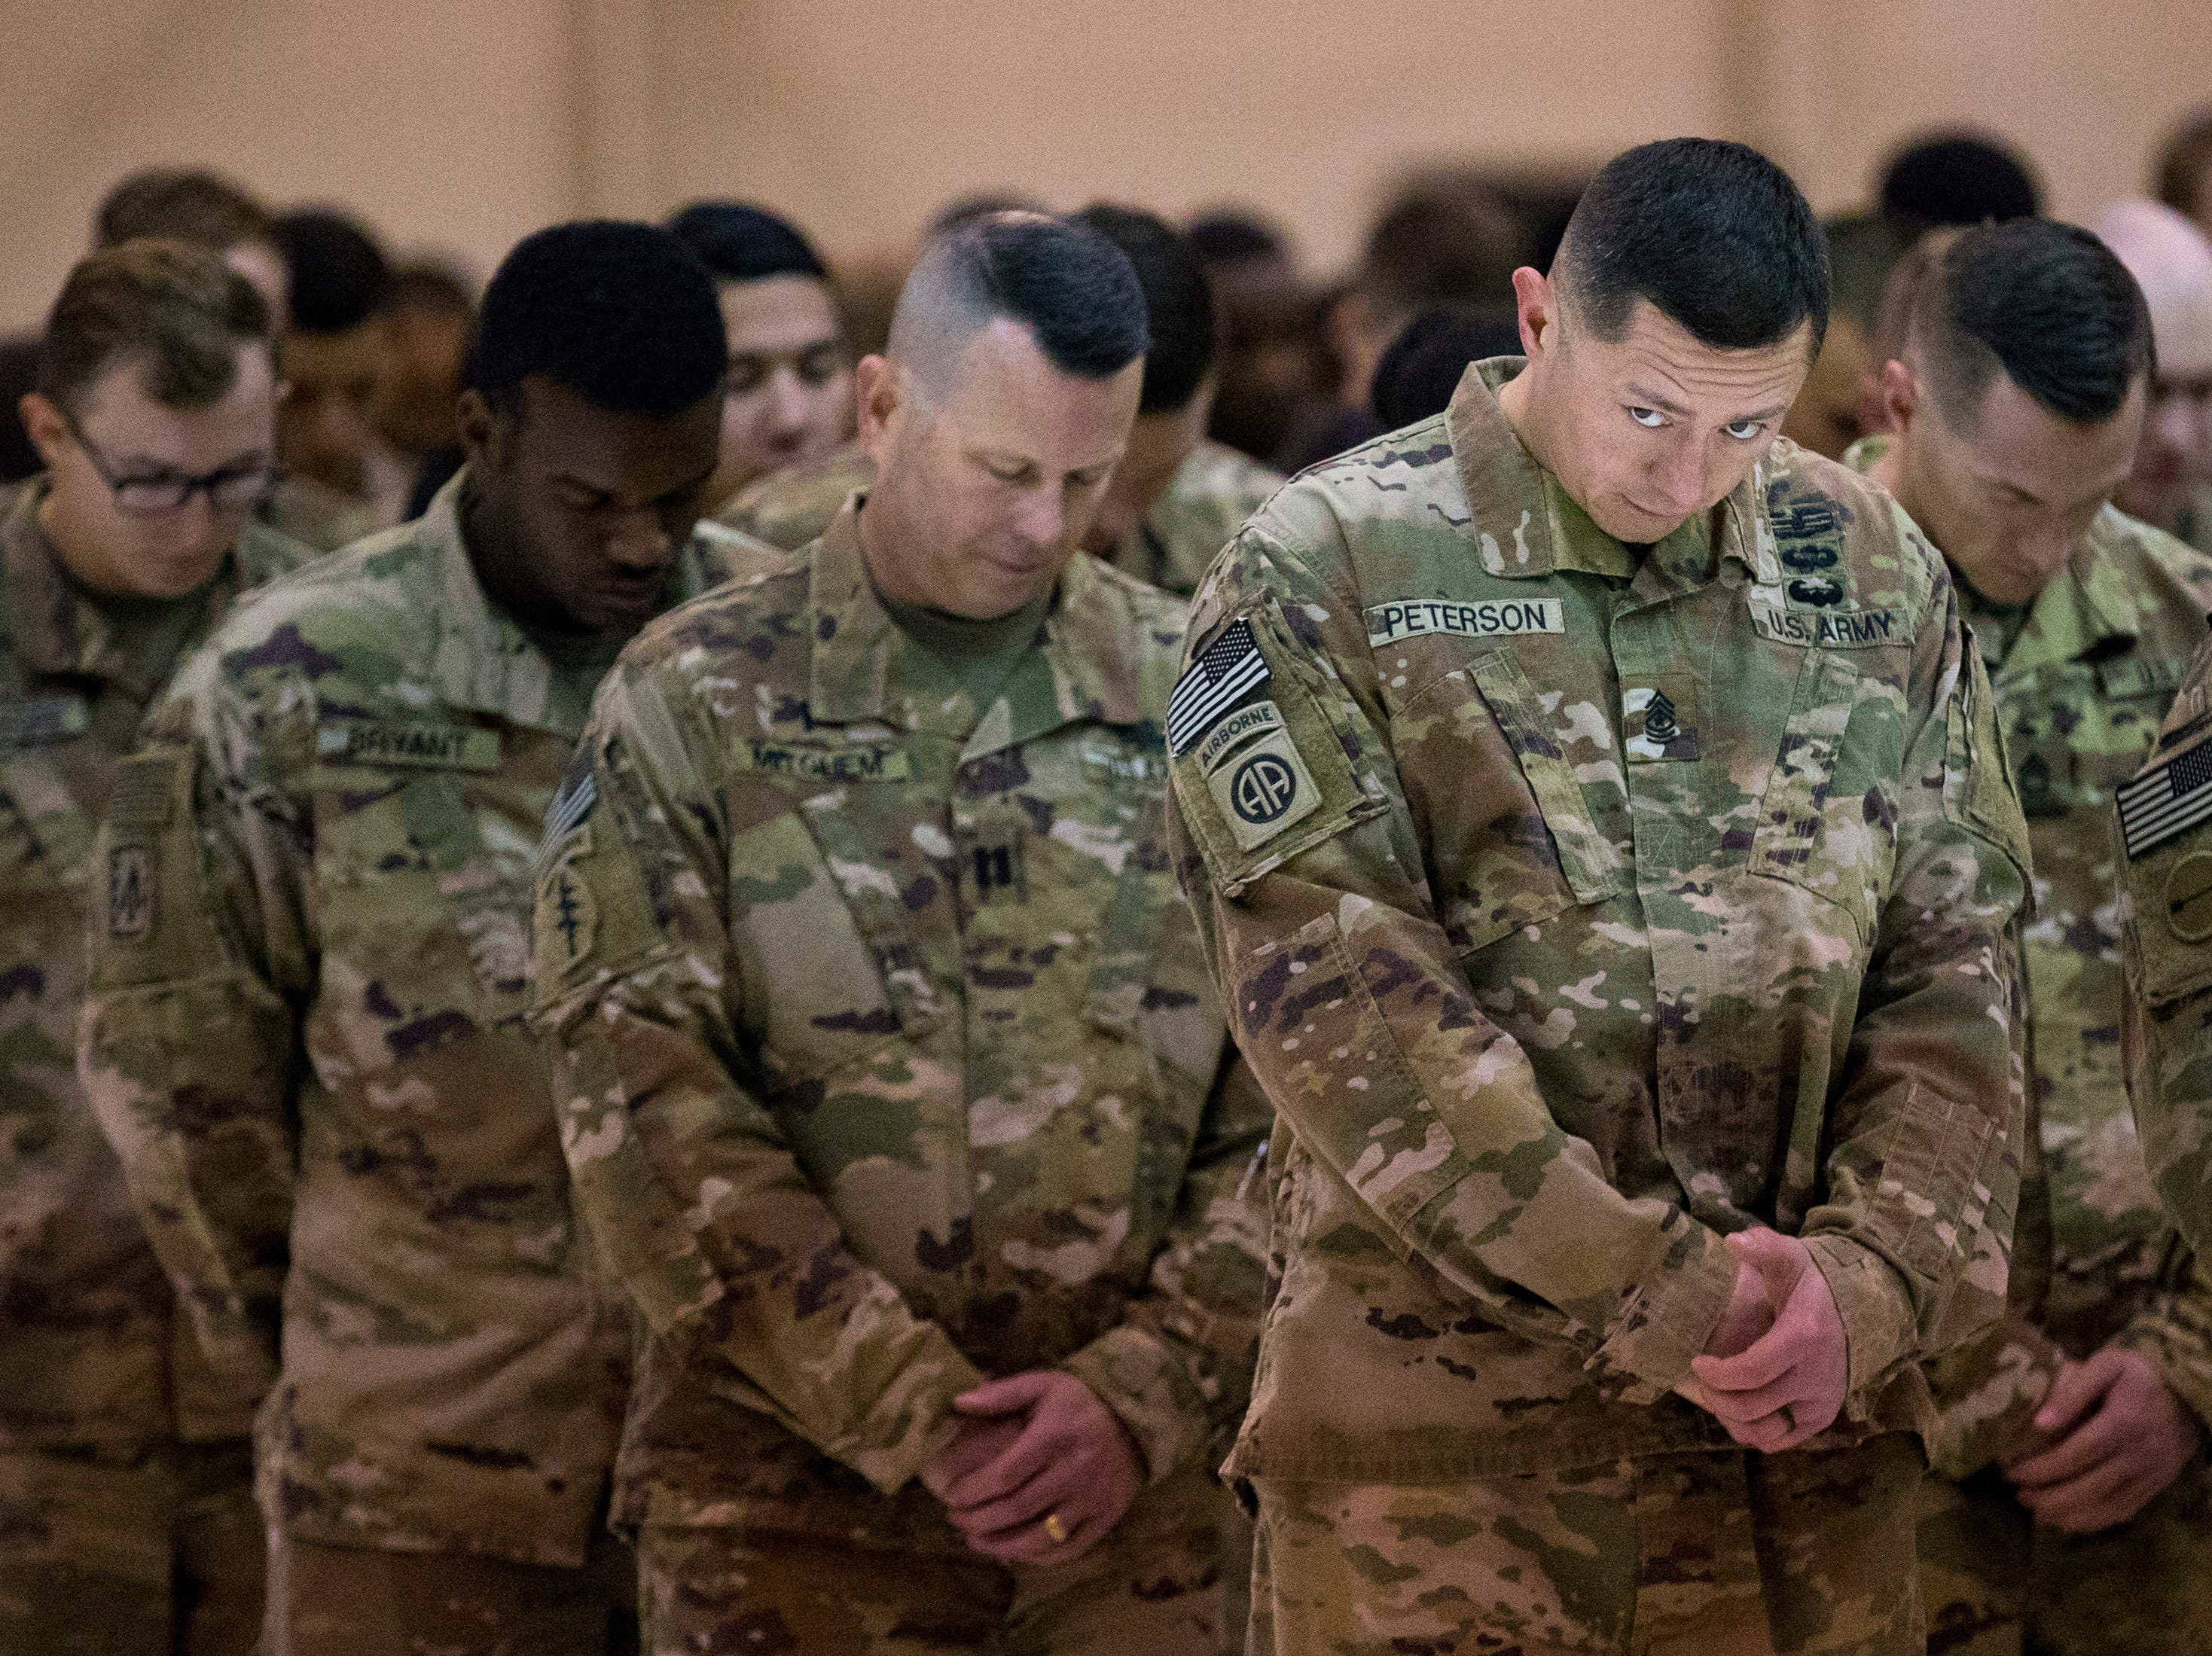 Sgt. Major Kevin Peterson glances up towards his wife and newborn son as a prayer is said during the welcome home ceremony for the 2nd Battalion, 44th Air Defense Artillery Regiment and 101st Airborne Division at Fort Campbell in the early hours of Monday, Nov. 19, 2018. The soldiers were returning from a 9-month deployment in Afghanistan.